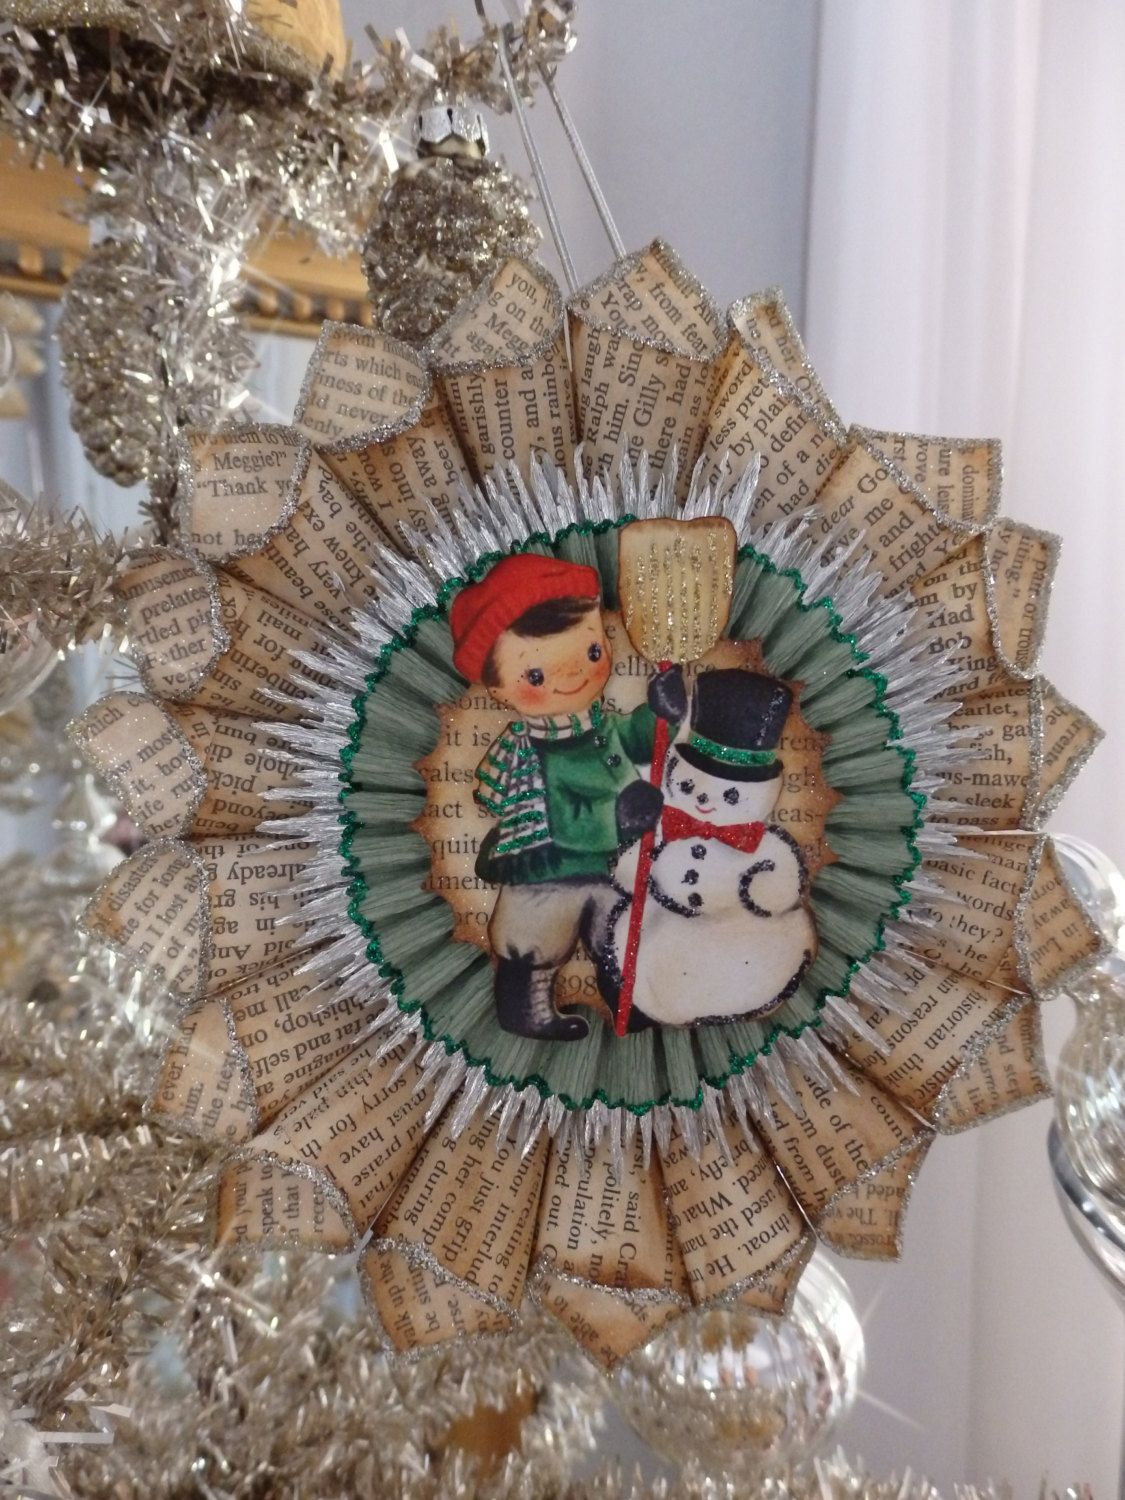 Vintage style boy with snowman christmas ornament by stacy marie by